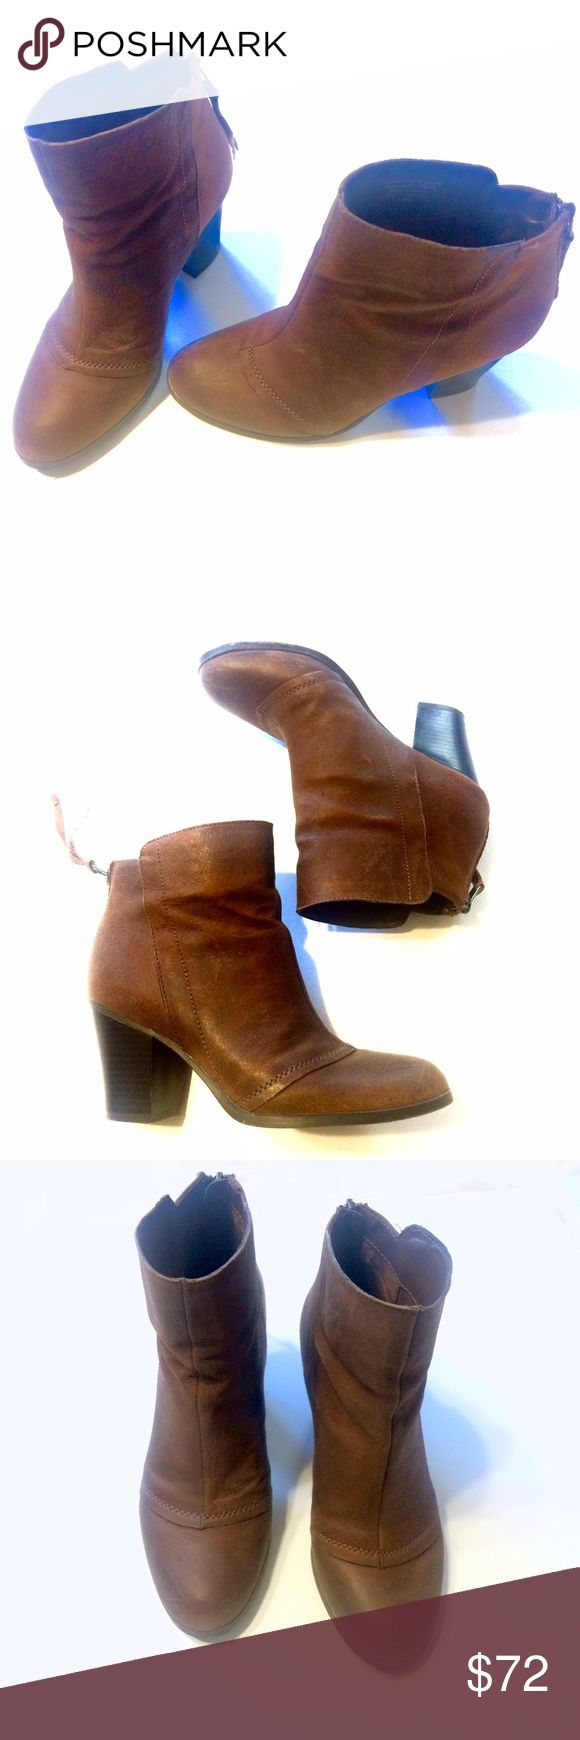 Super cute boots - worn twice Adorable BAR II Jillian ankle bootie features leather upper & man-made sole with rounded toe. Perfect for wear out, work to casual dressing.- so somewhere but they are naturally distressed as well- Great condition💕 Bar III Shoes Ankle Boots & Booties